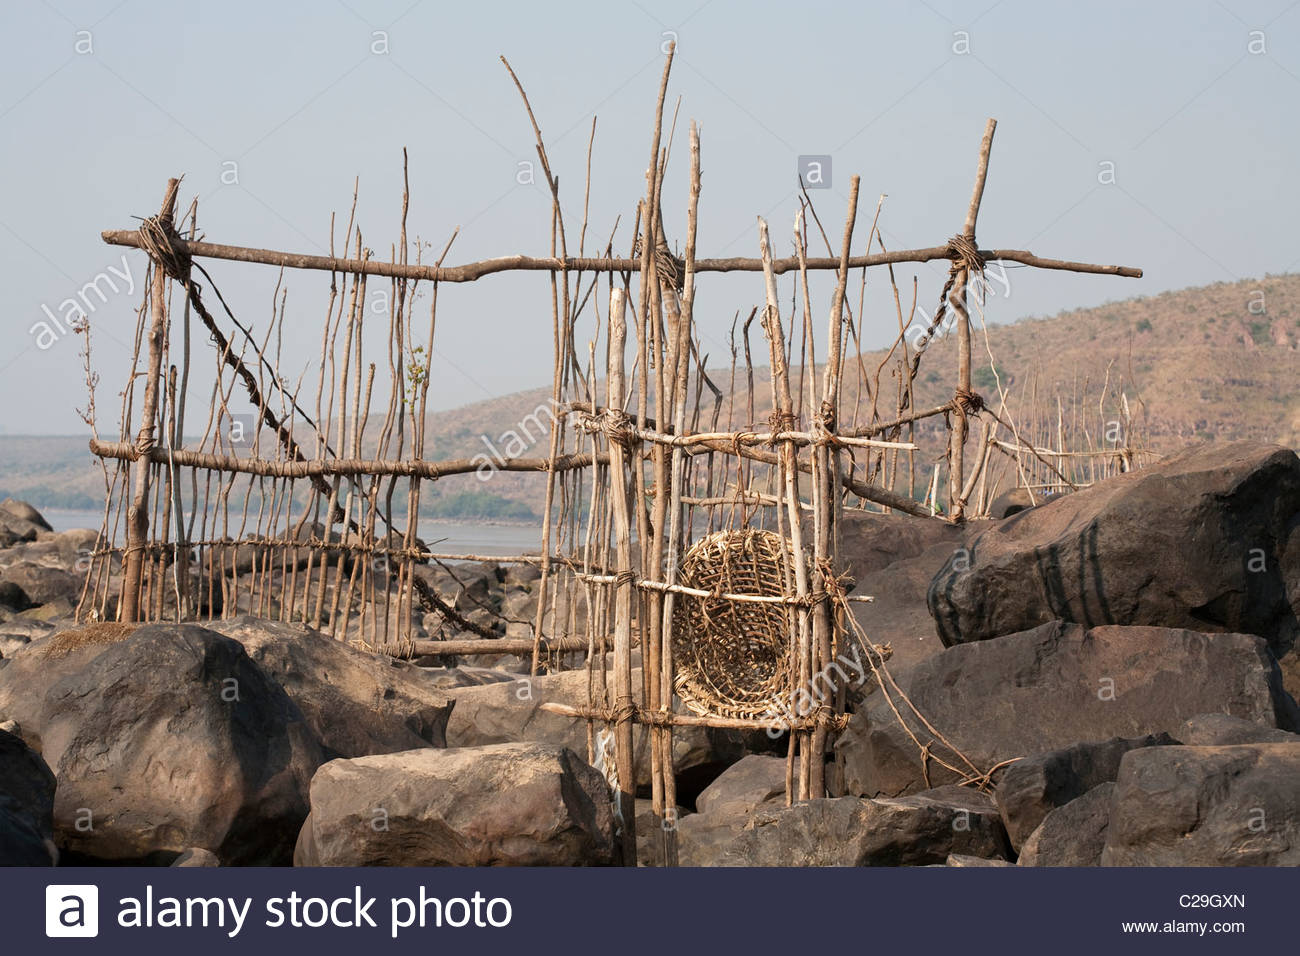 An elaborate system of fish traps exposed by low water. - Stock Image